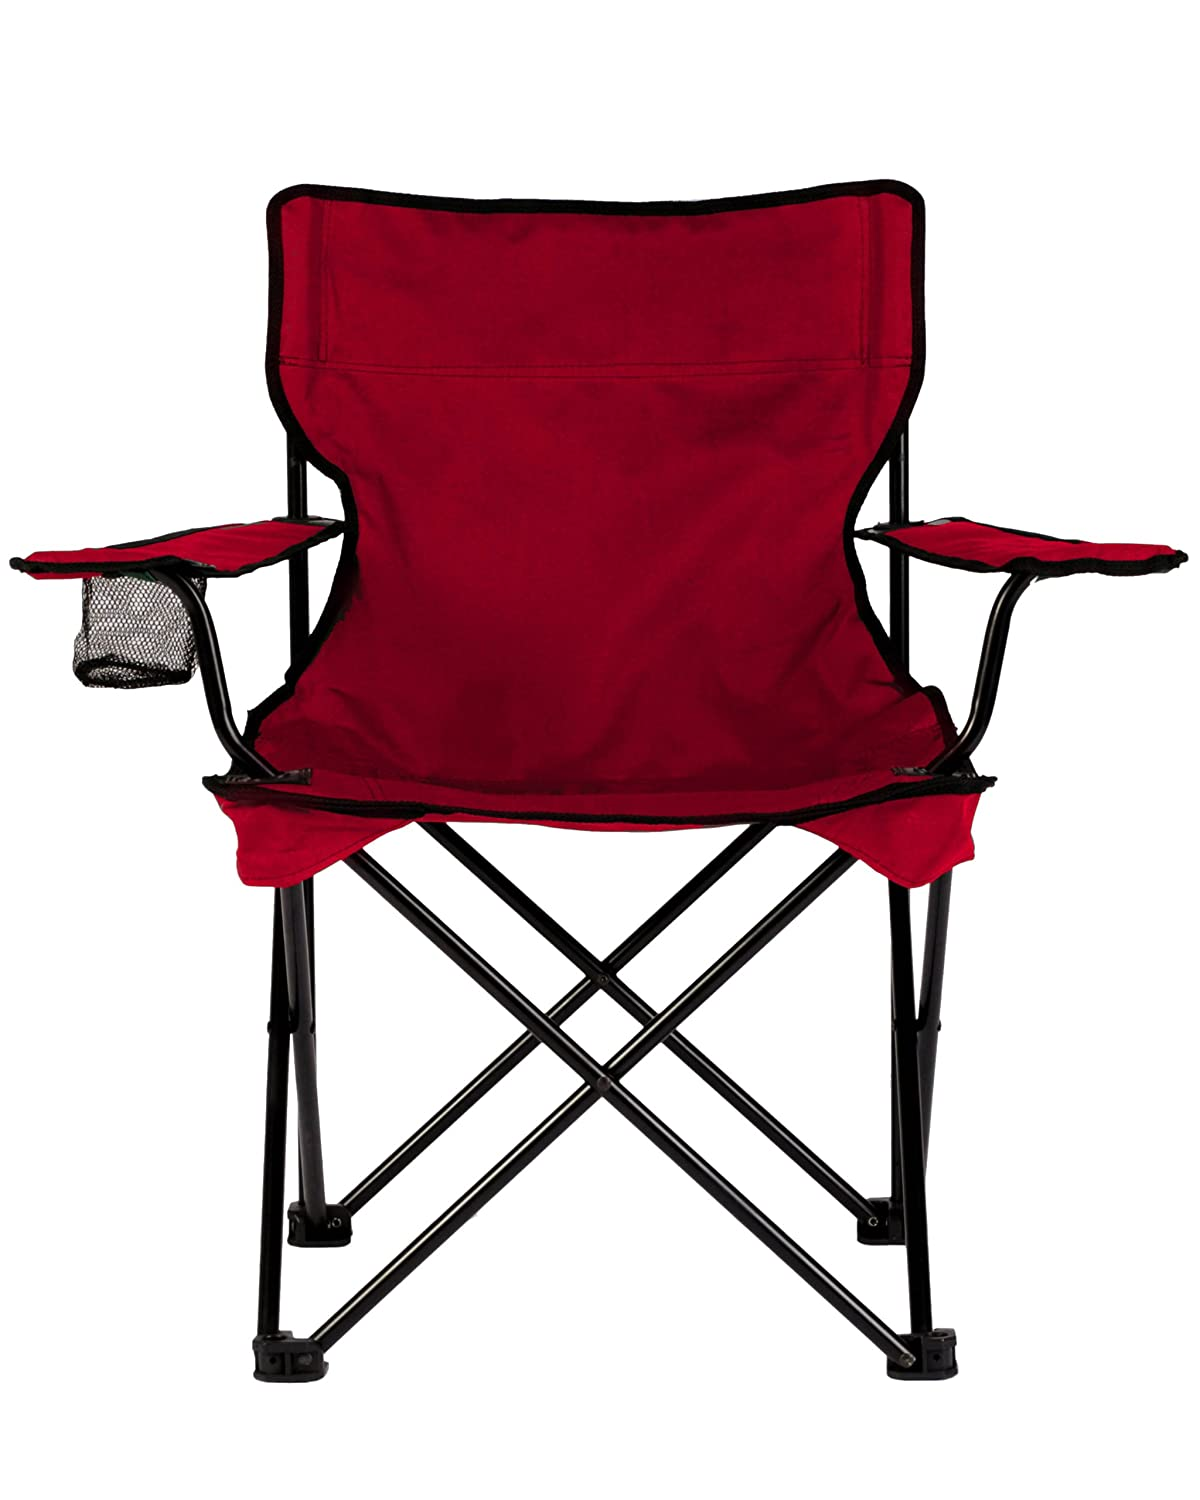 TravelChair C-Series Rider Chair Foldable and Portable Camping Chair Foldable and Portable for Camping Fun Blue Travel Chair Company 589CB